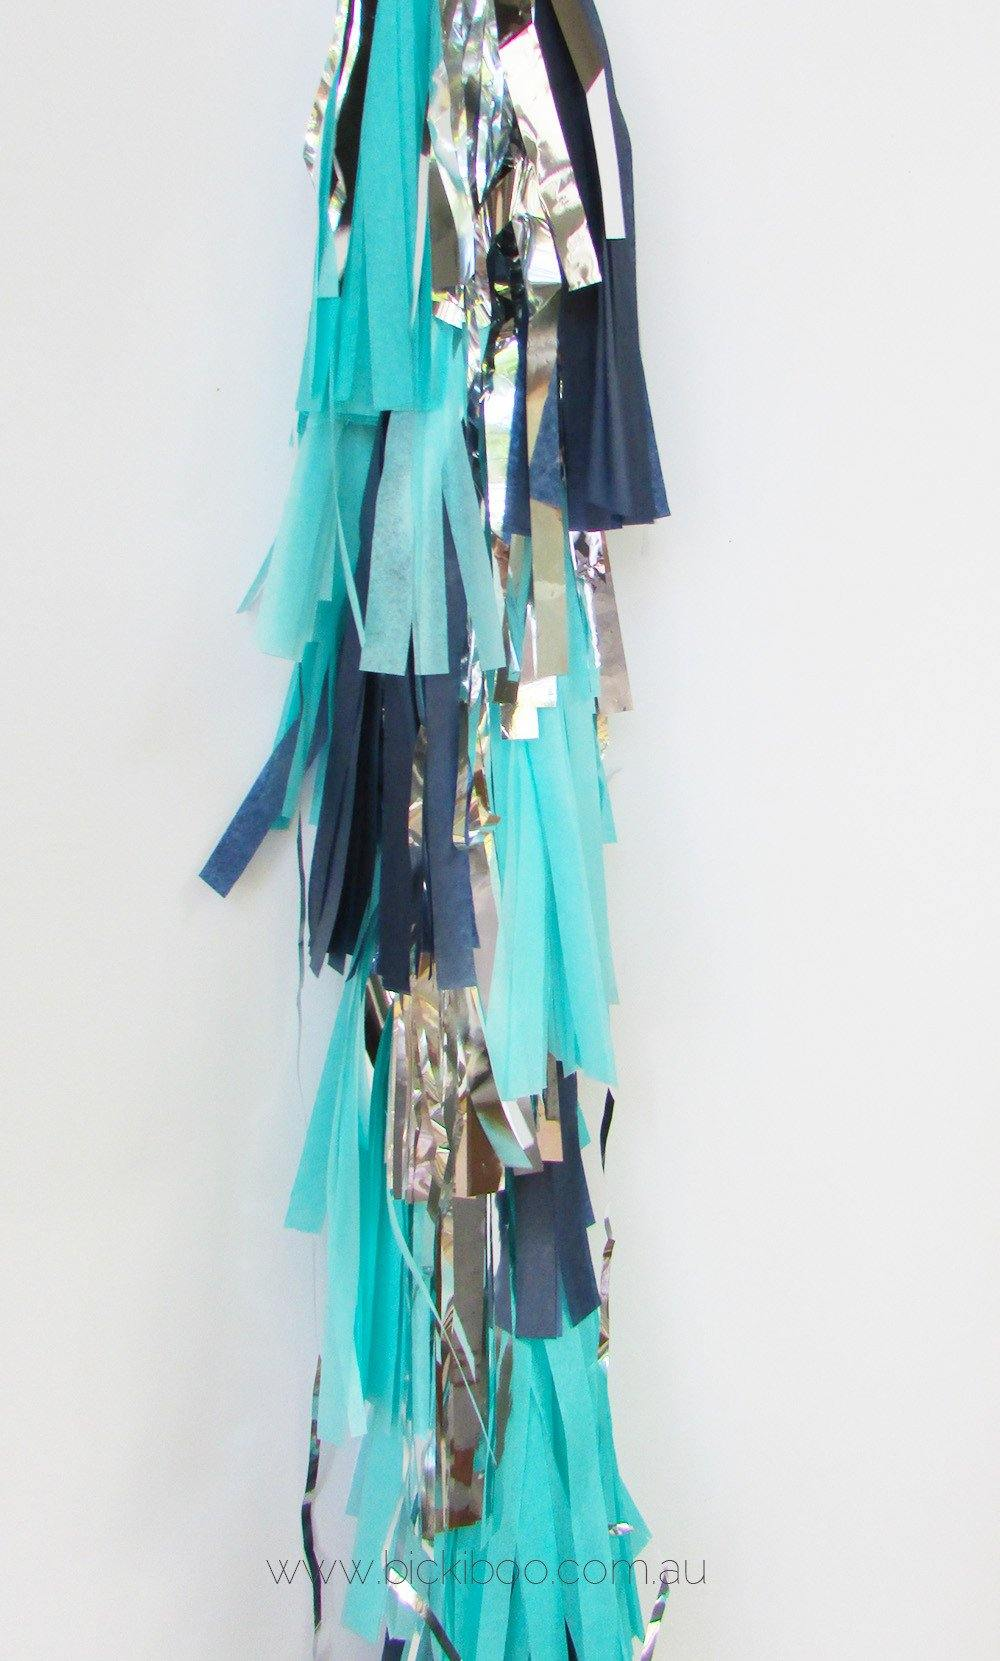 Balloon Tassel Garland - Blues - Bickiboo Party Supplies